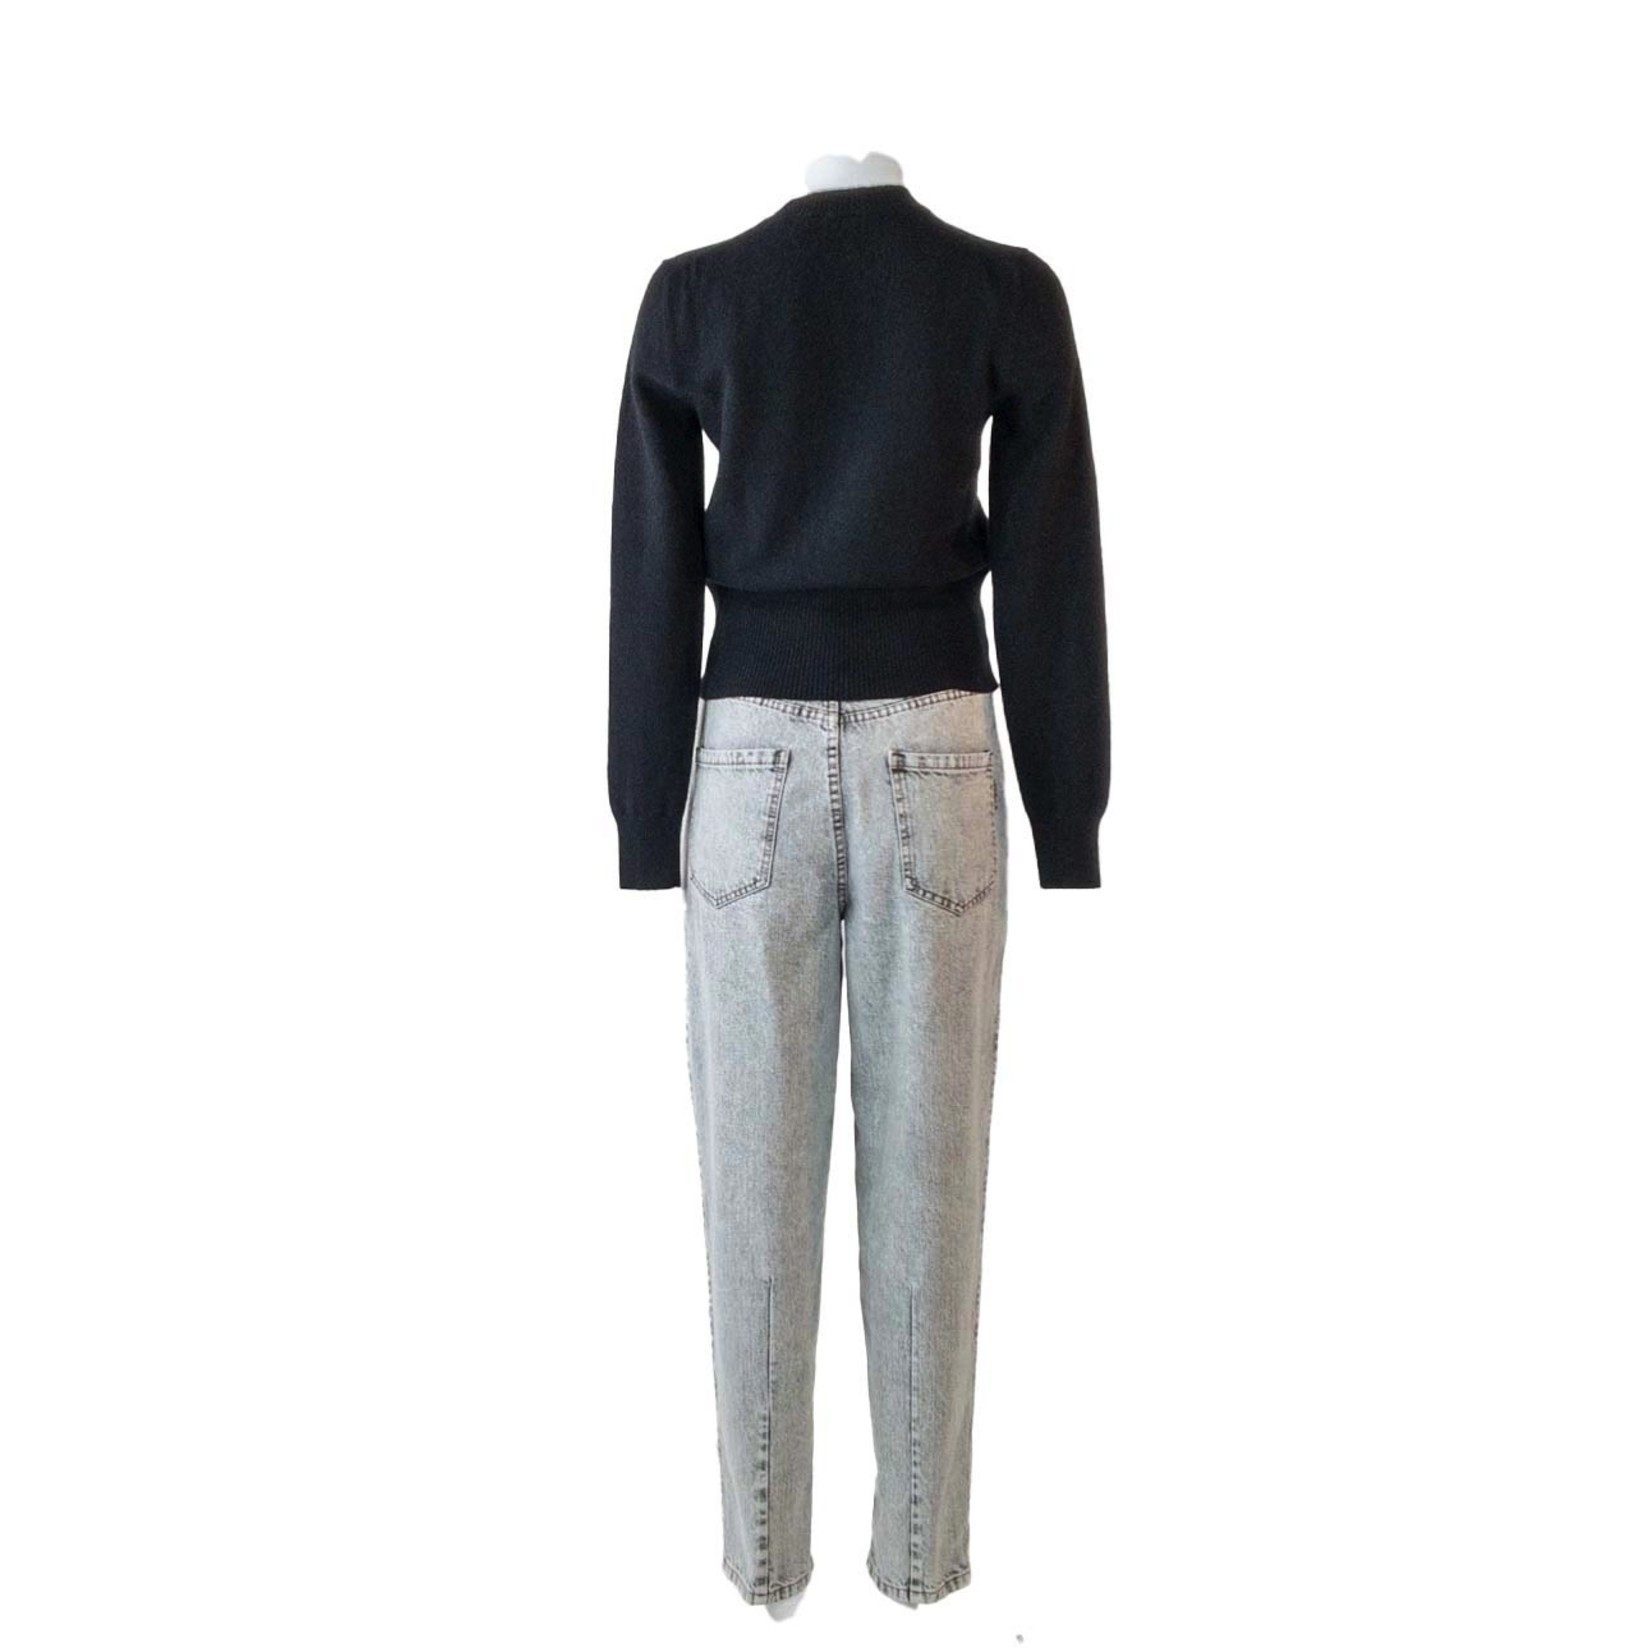 DUSAN FITTED CASHMERE SWEATER